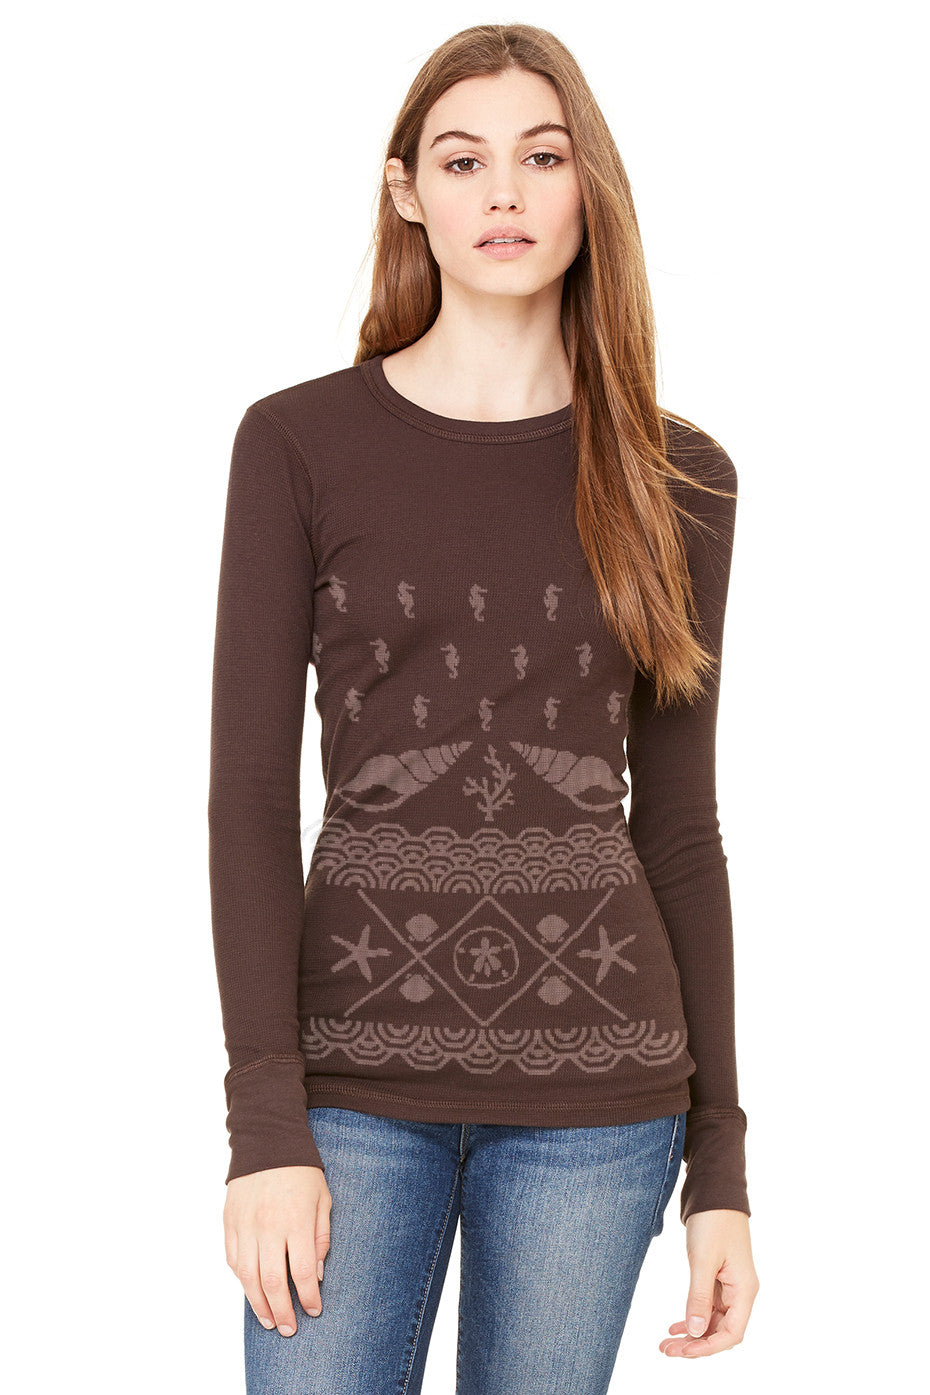 the admiral's daughters under the sea brown long sleeve thermal christmas sweater seashells waves coastal holiday